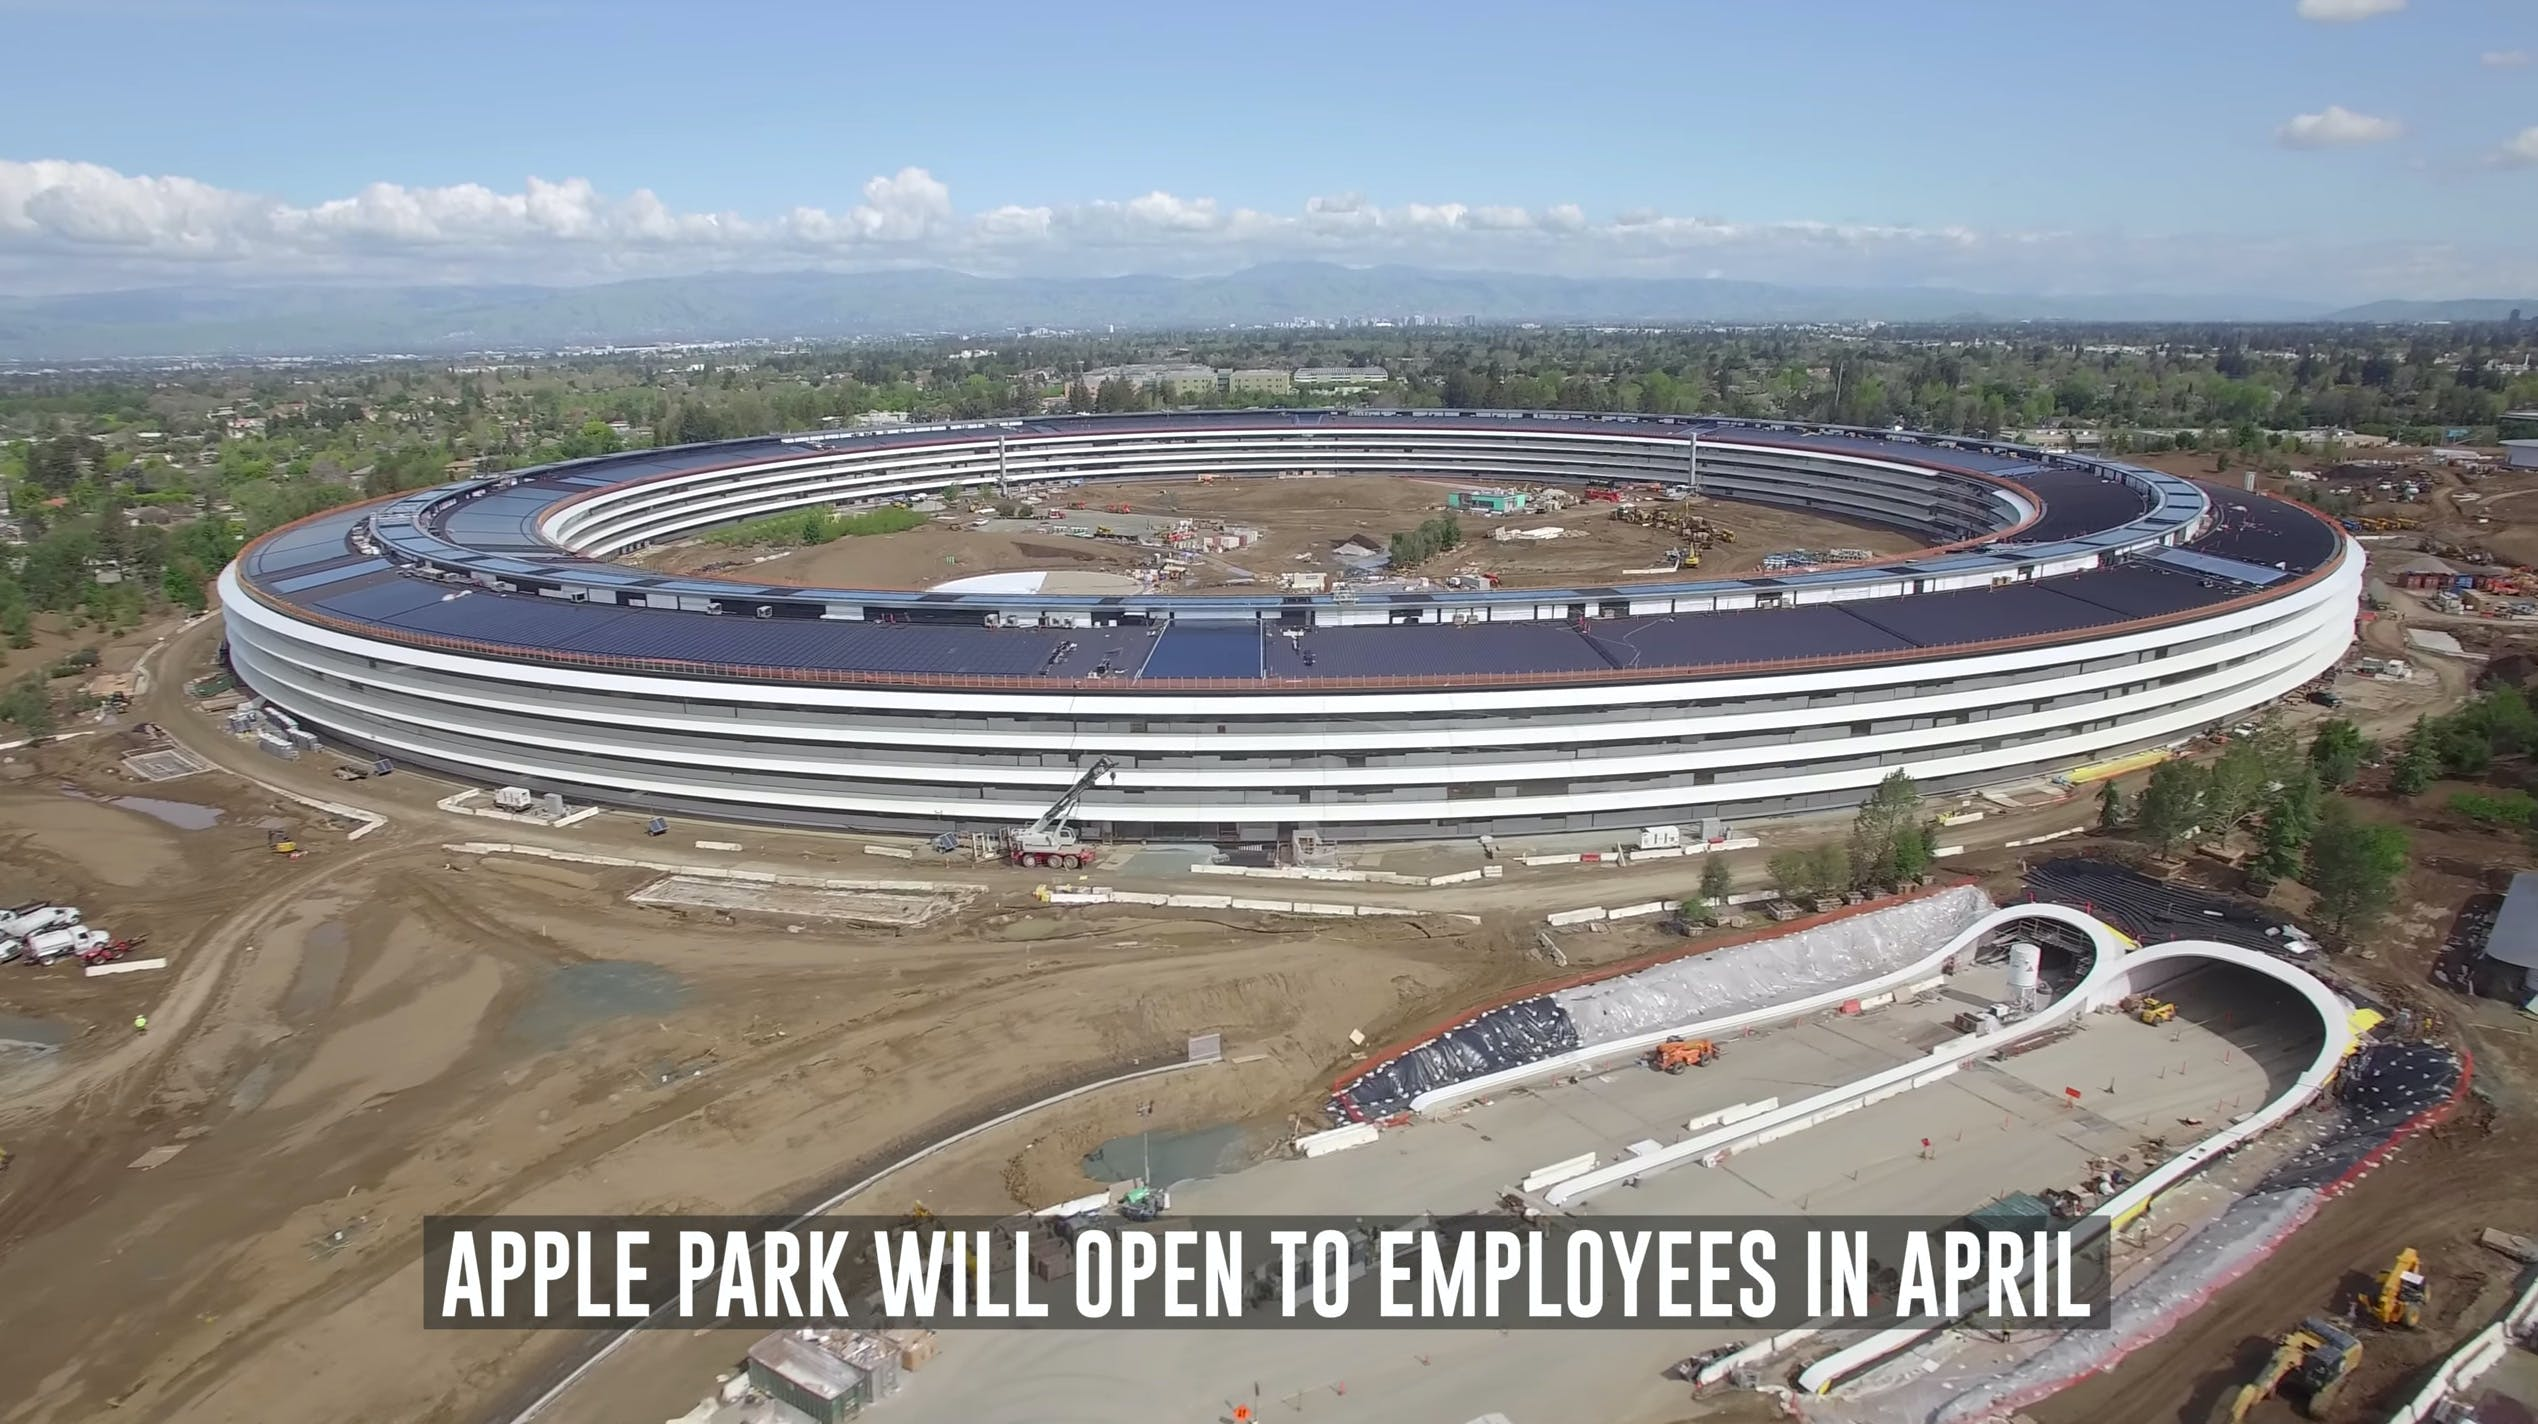 An exquisite drone tour over Apple's new campus reveals the